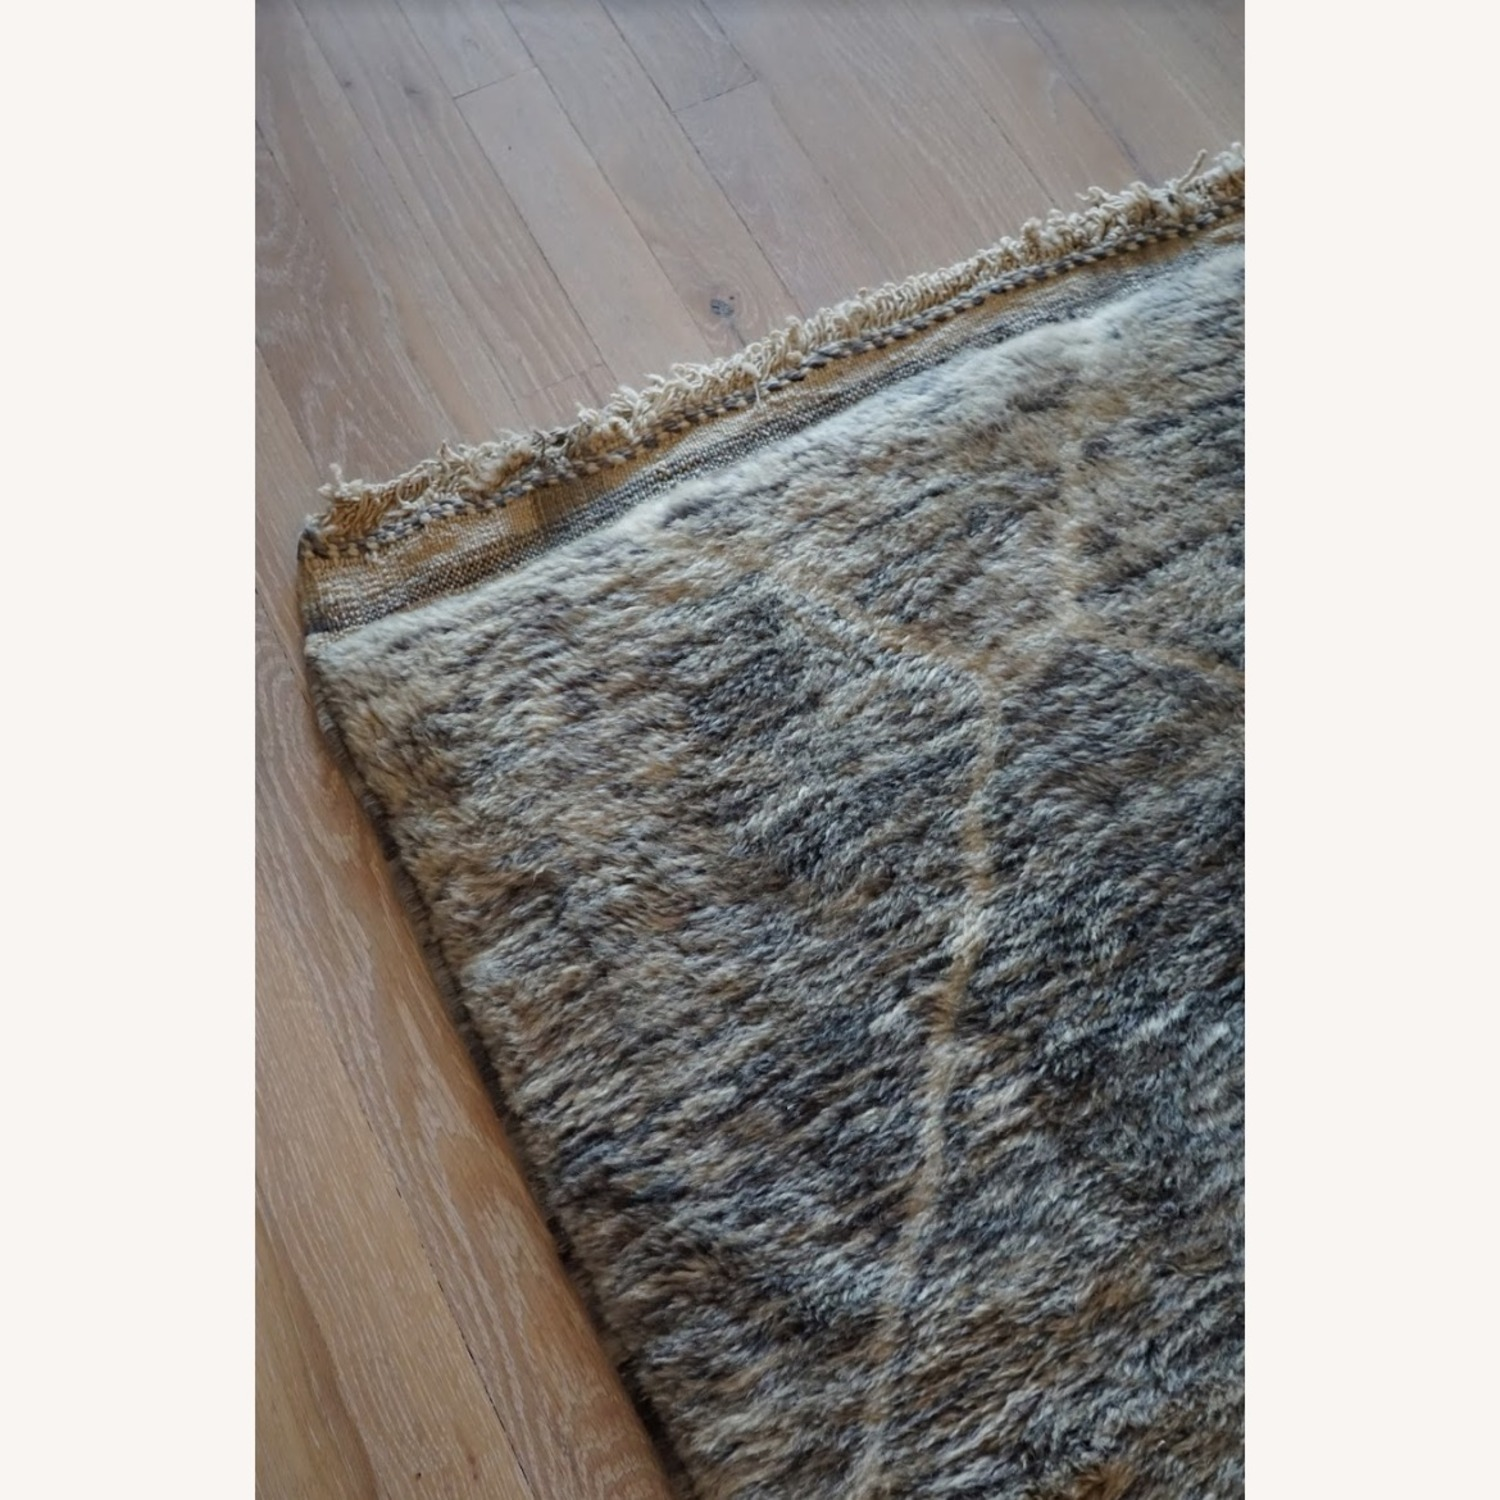 ABC Carpet and Home Beni Ourain Moroccan Rug - image-3